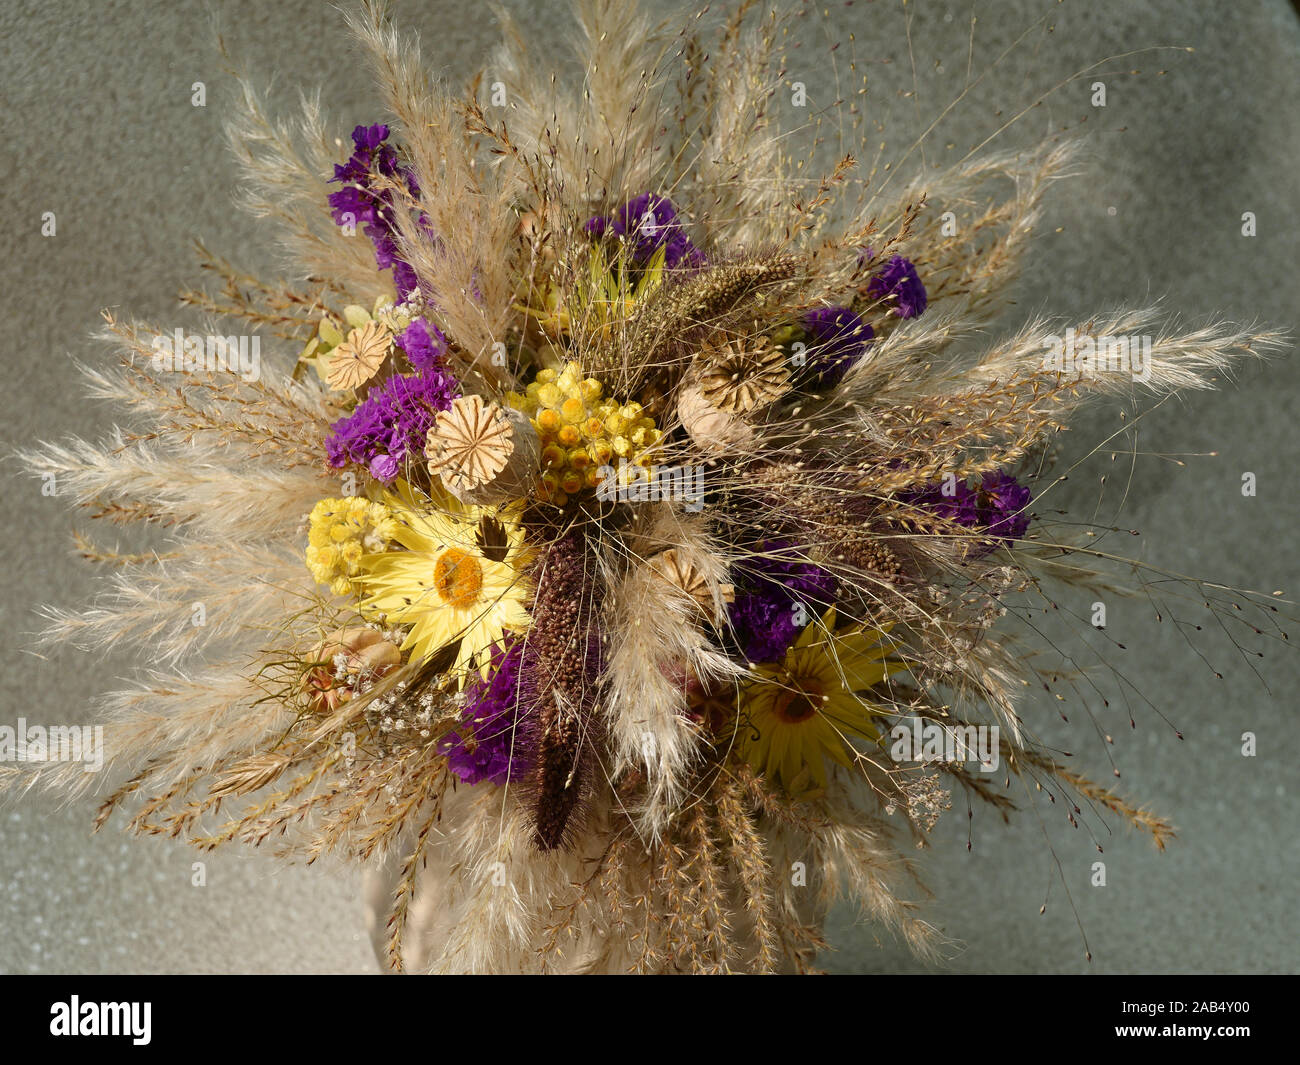 Dried Flower And Grass Arrangement Yellow And Purple Stock Photo Alamy